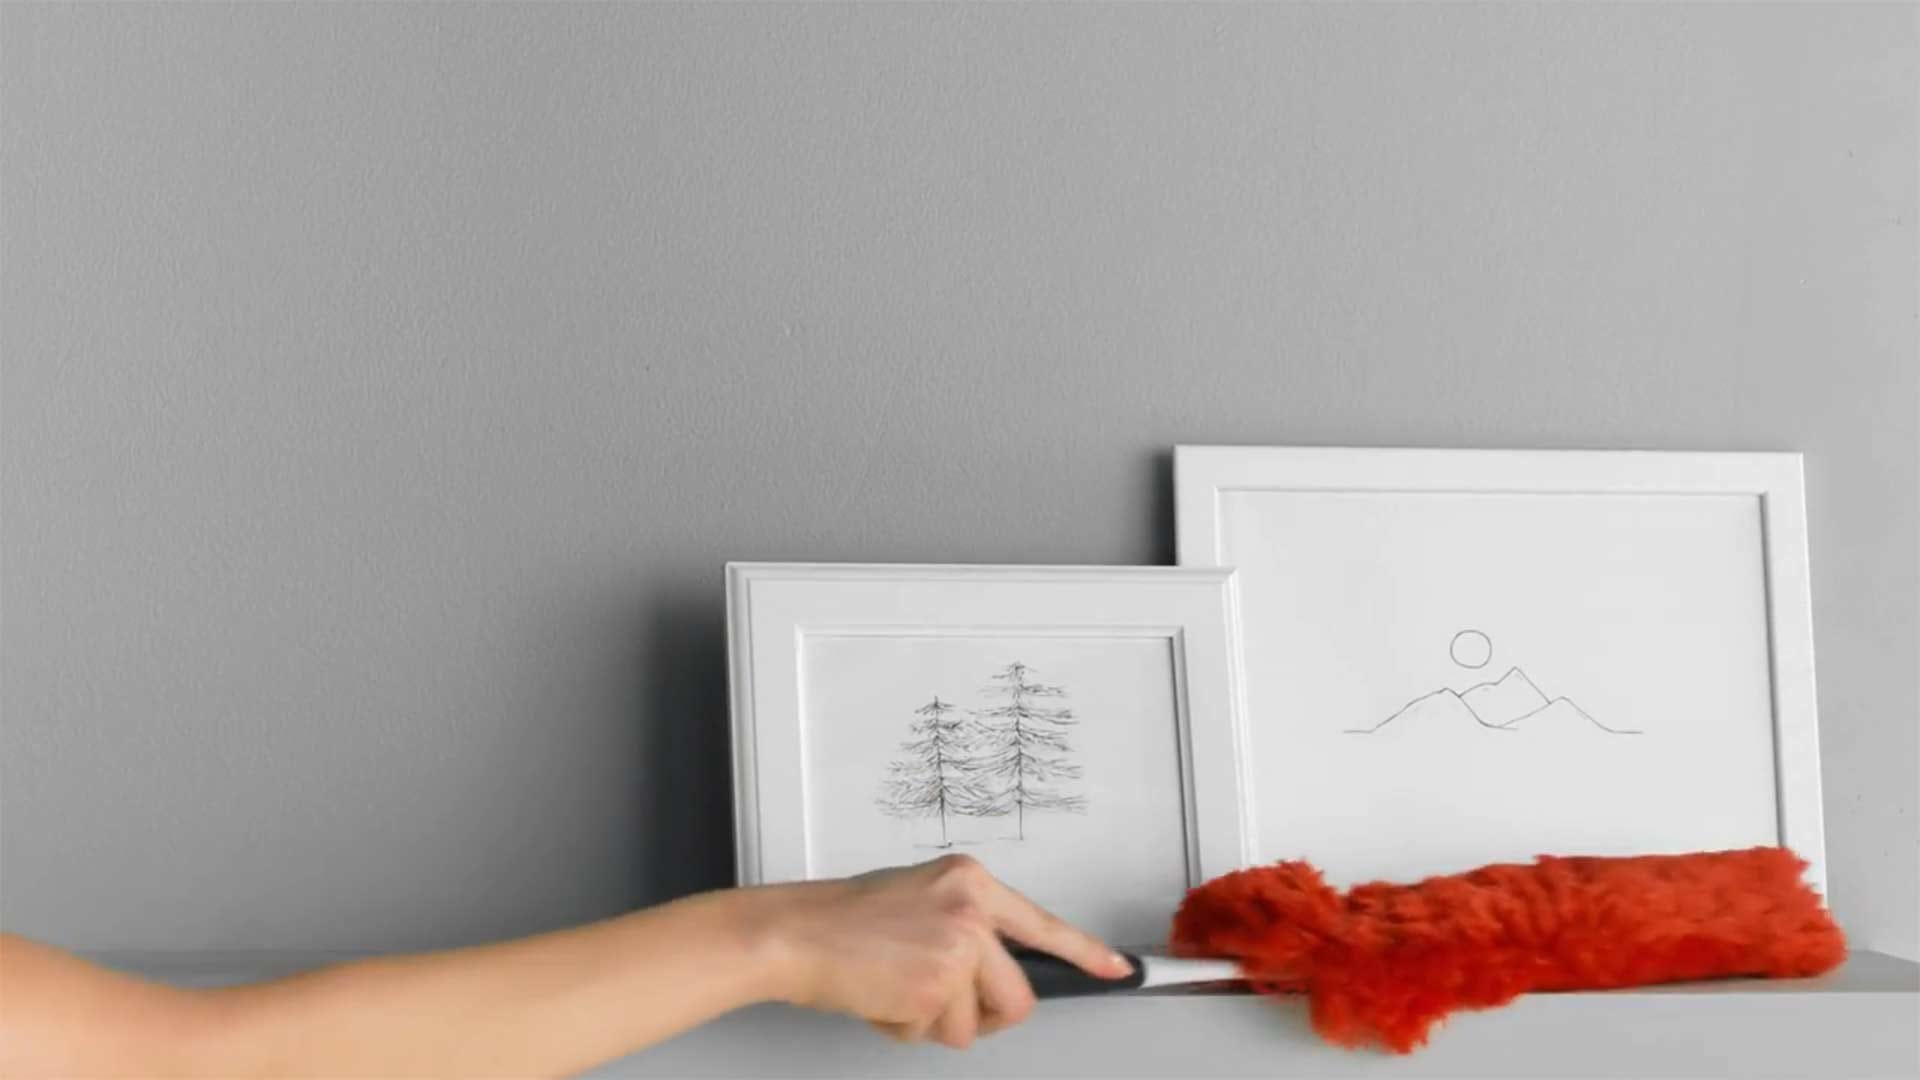 A person dusting a ledge and picture frames using a bright red microfiber OXO hand duster.